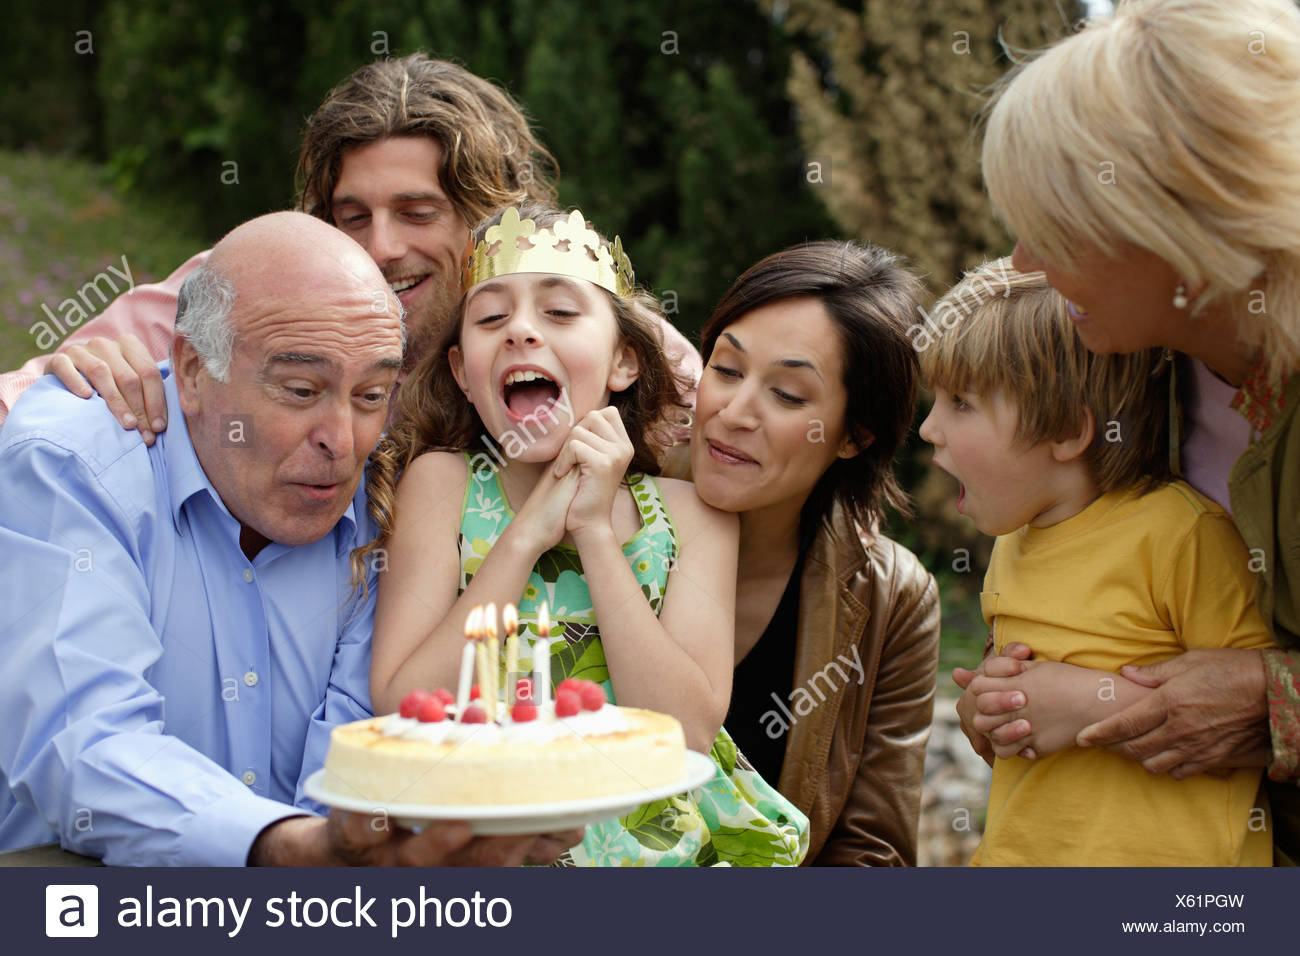 Young girl celebrating birthday with family - Stock Image